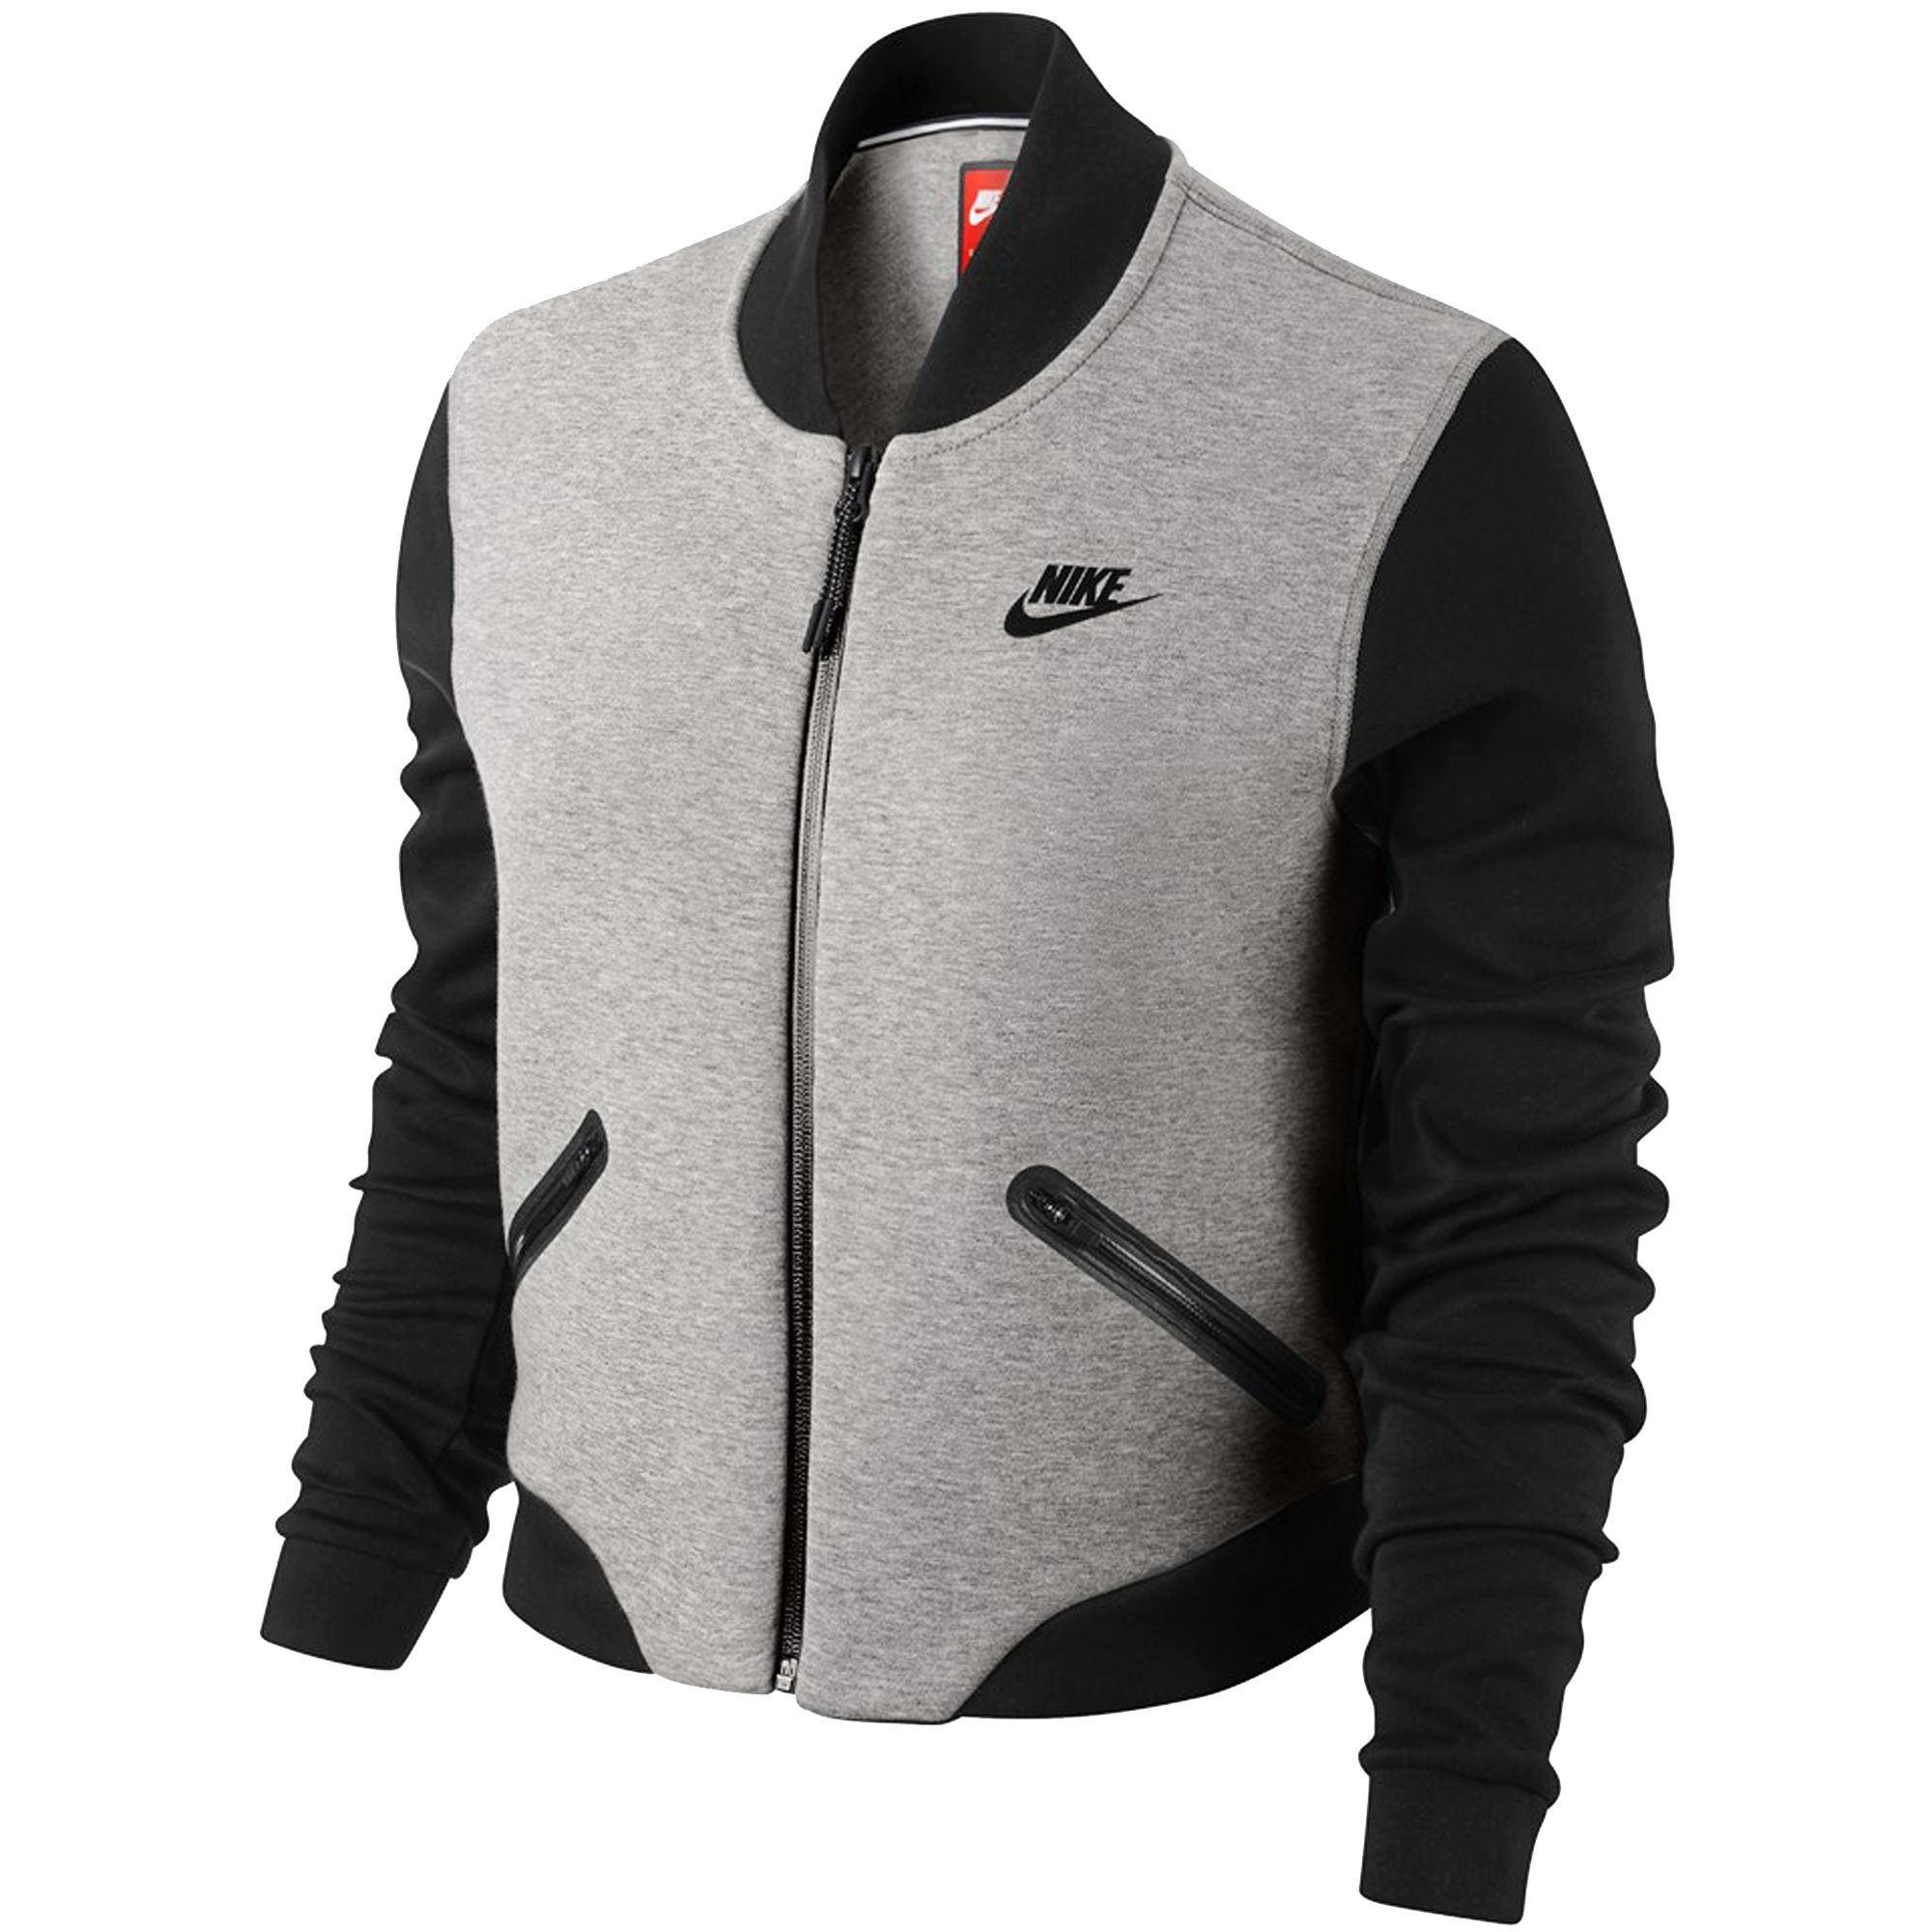 Fleece Tech JacketsY CeketSport Jacket Nike Bomber FJclKT1